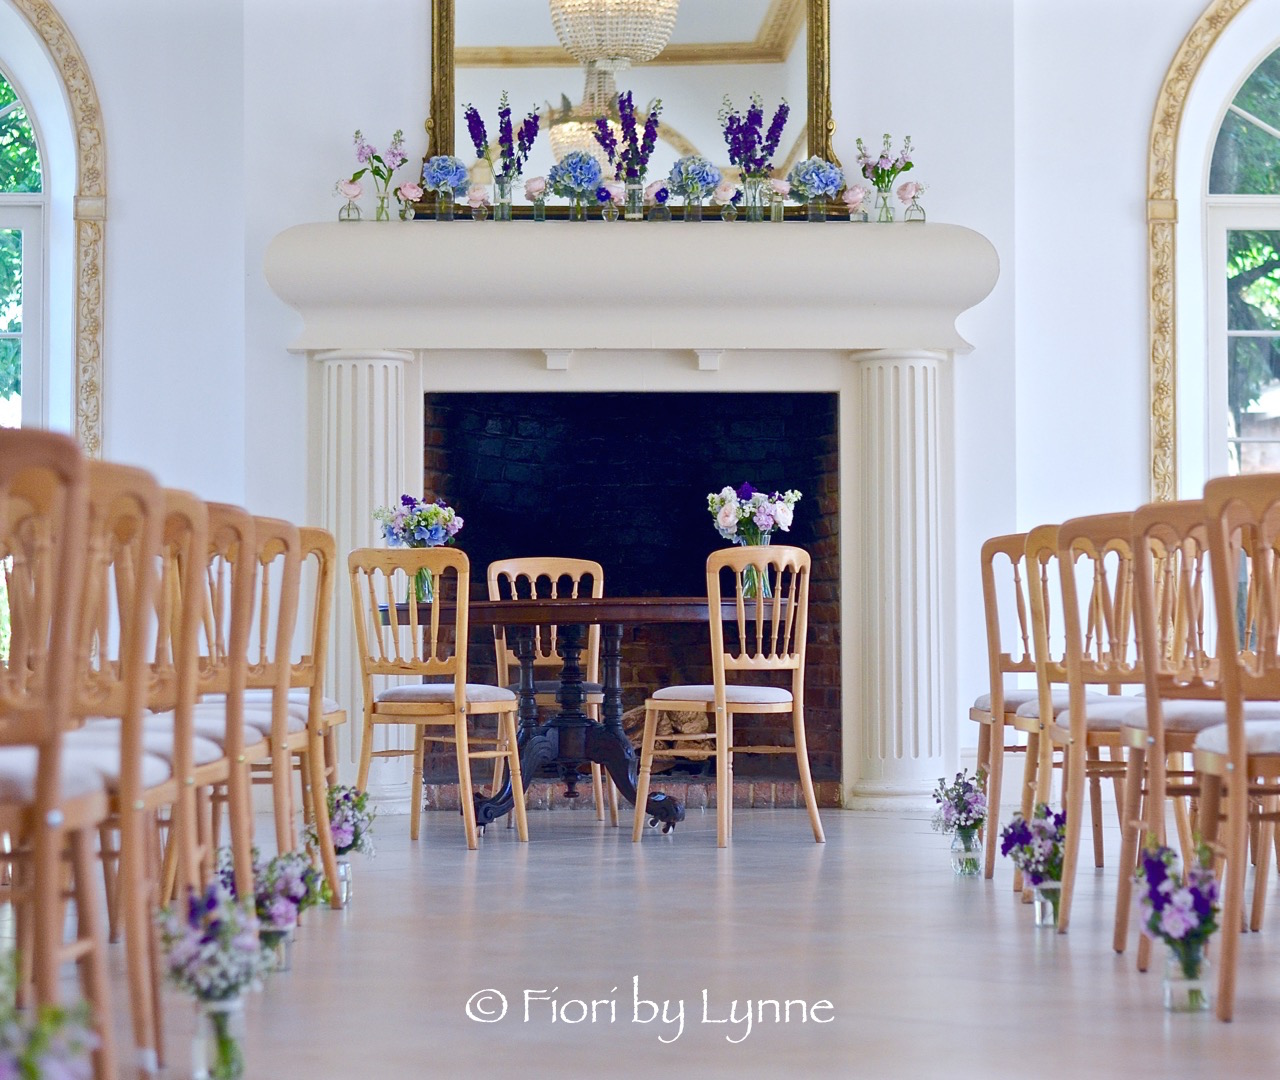 northbrookpark-ceremony-flowers-table-mantle-aisle.jpg